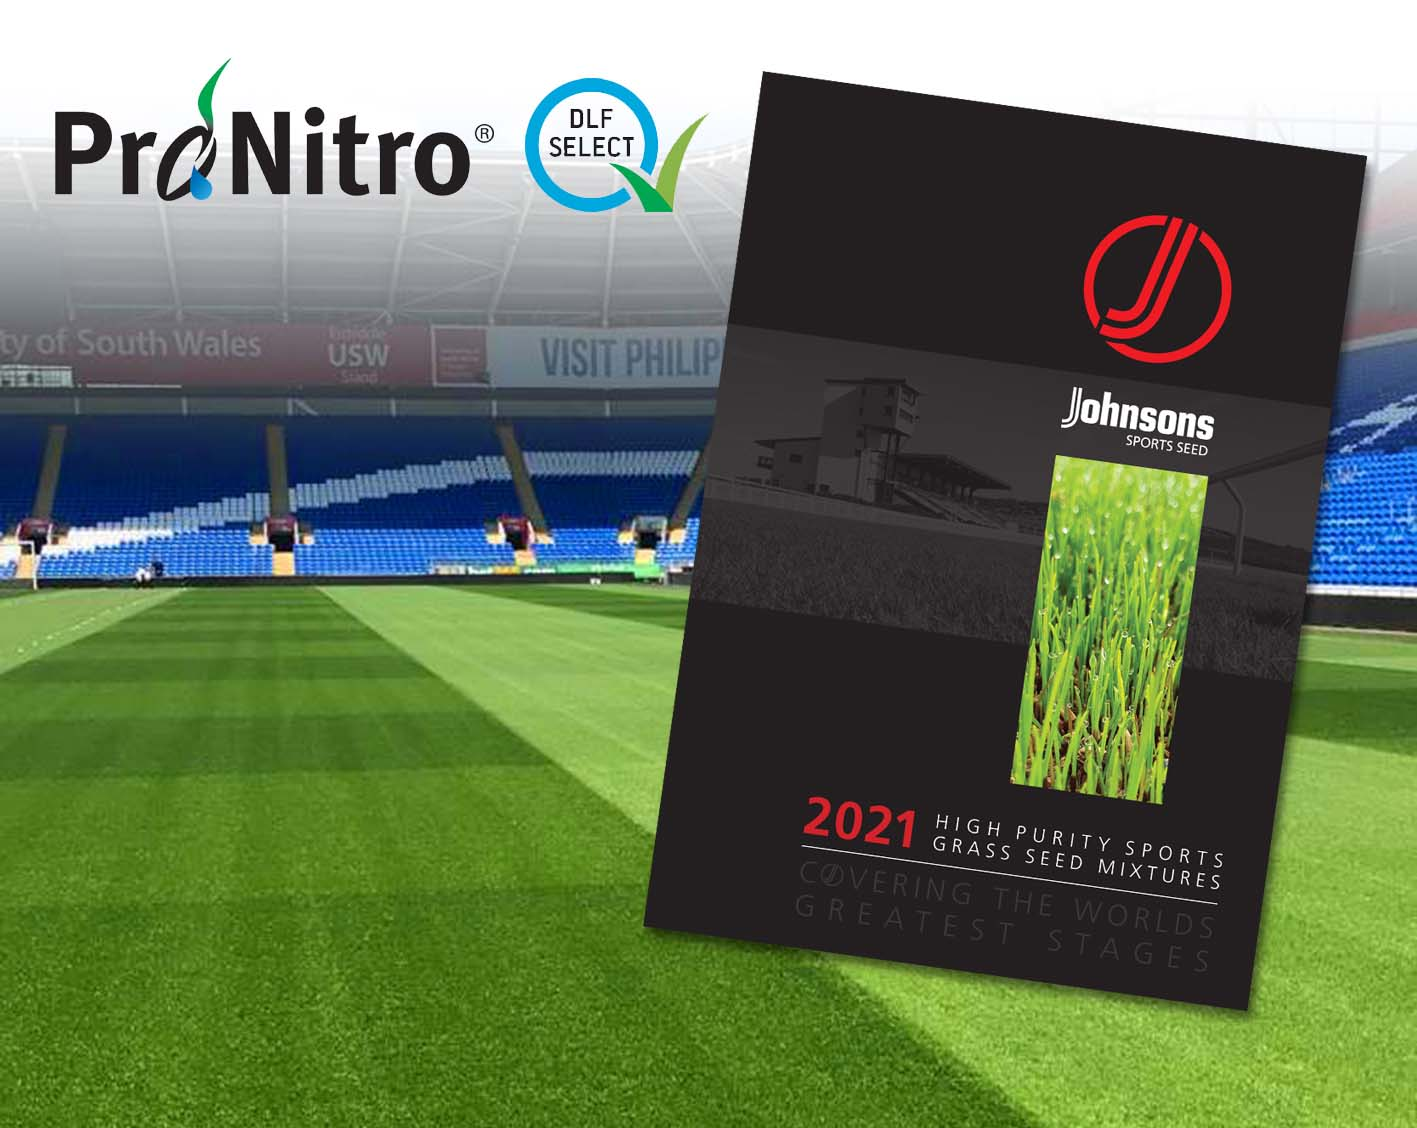 Johnsons Sports Seed announce new cultivars and formulations for 2021